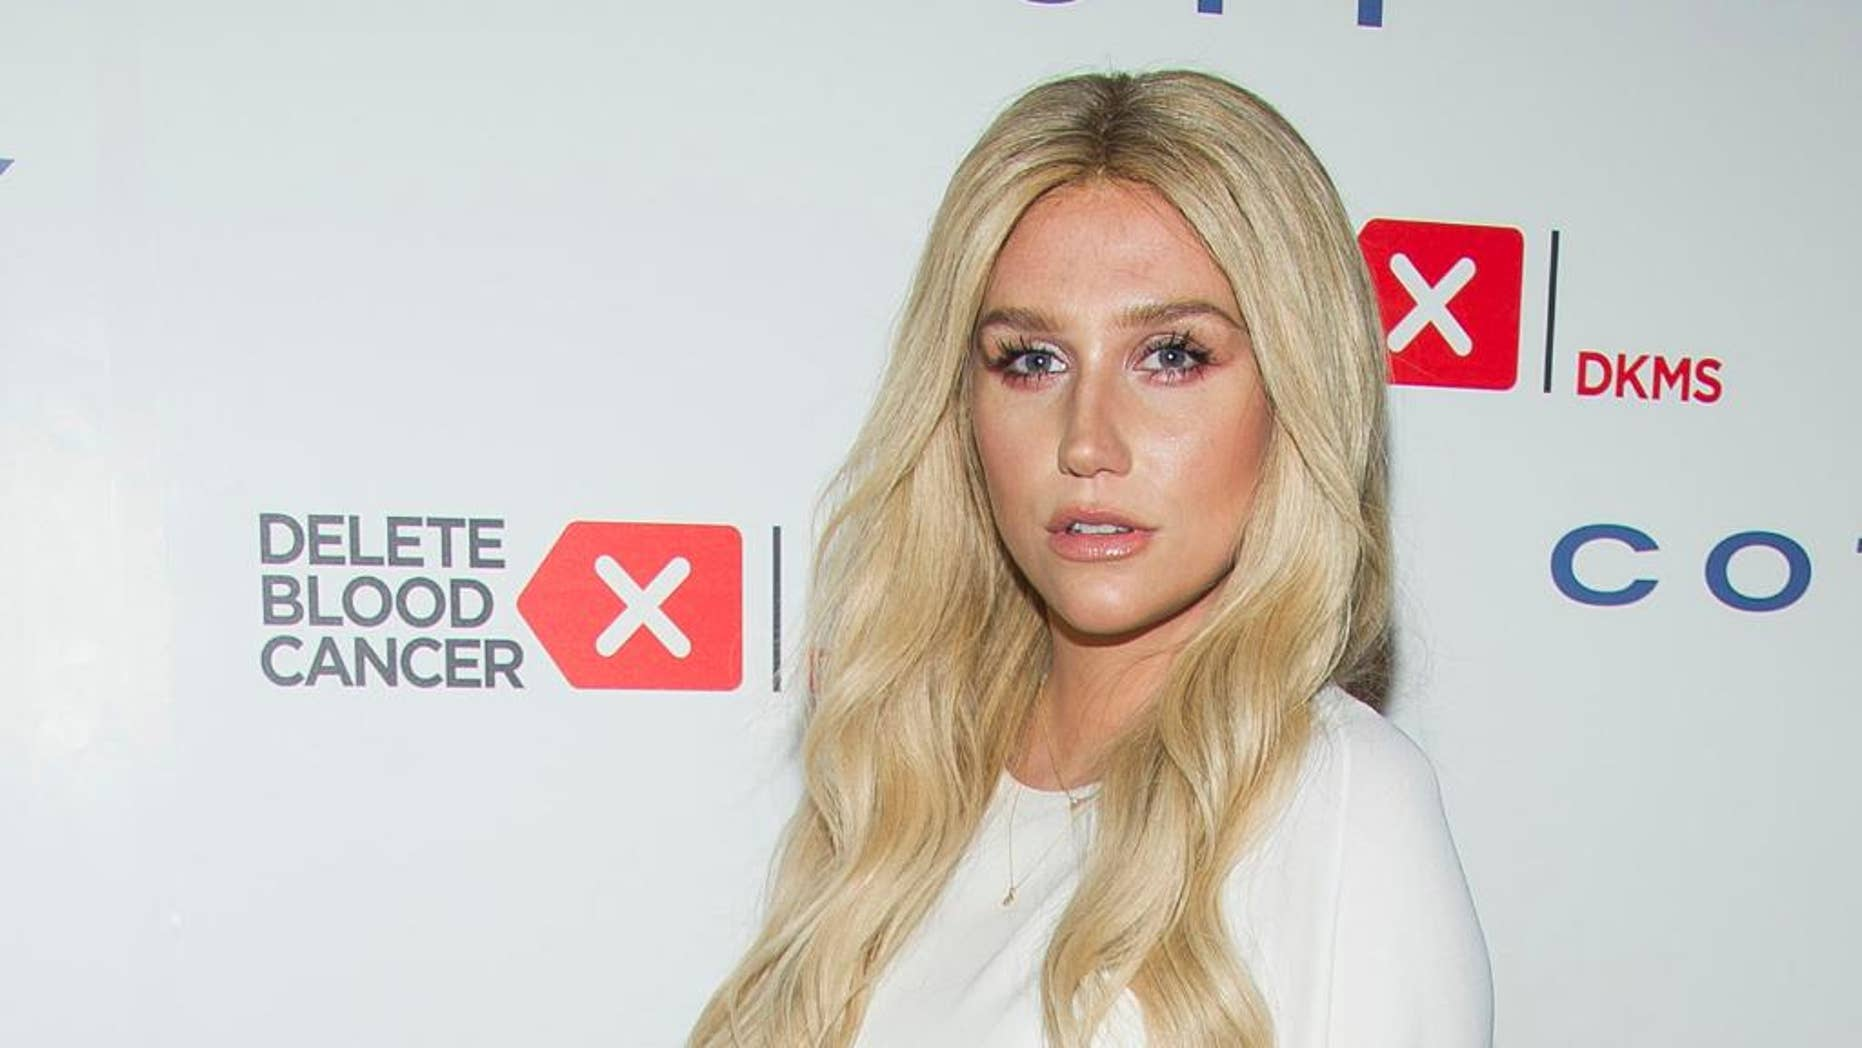 FILE- In this April 16, 2015 file photo, Kesha attends the 2015 Delete Blood Cancer Gala in New York. Kesha, who was readying a live performance at Sunday's Billboard Music Awards, is no longer performing at the show. (Photo by Charles Sykes/Invision/AP, File)